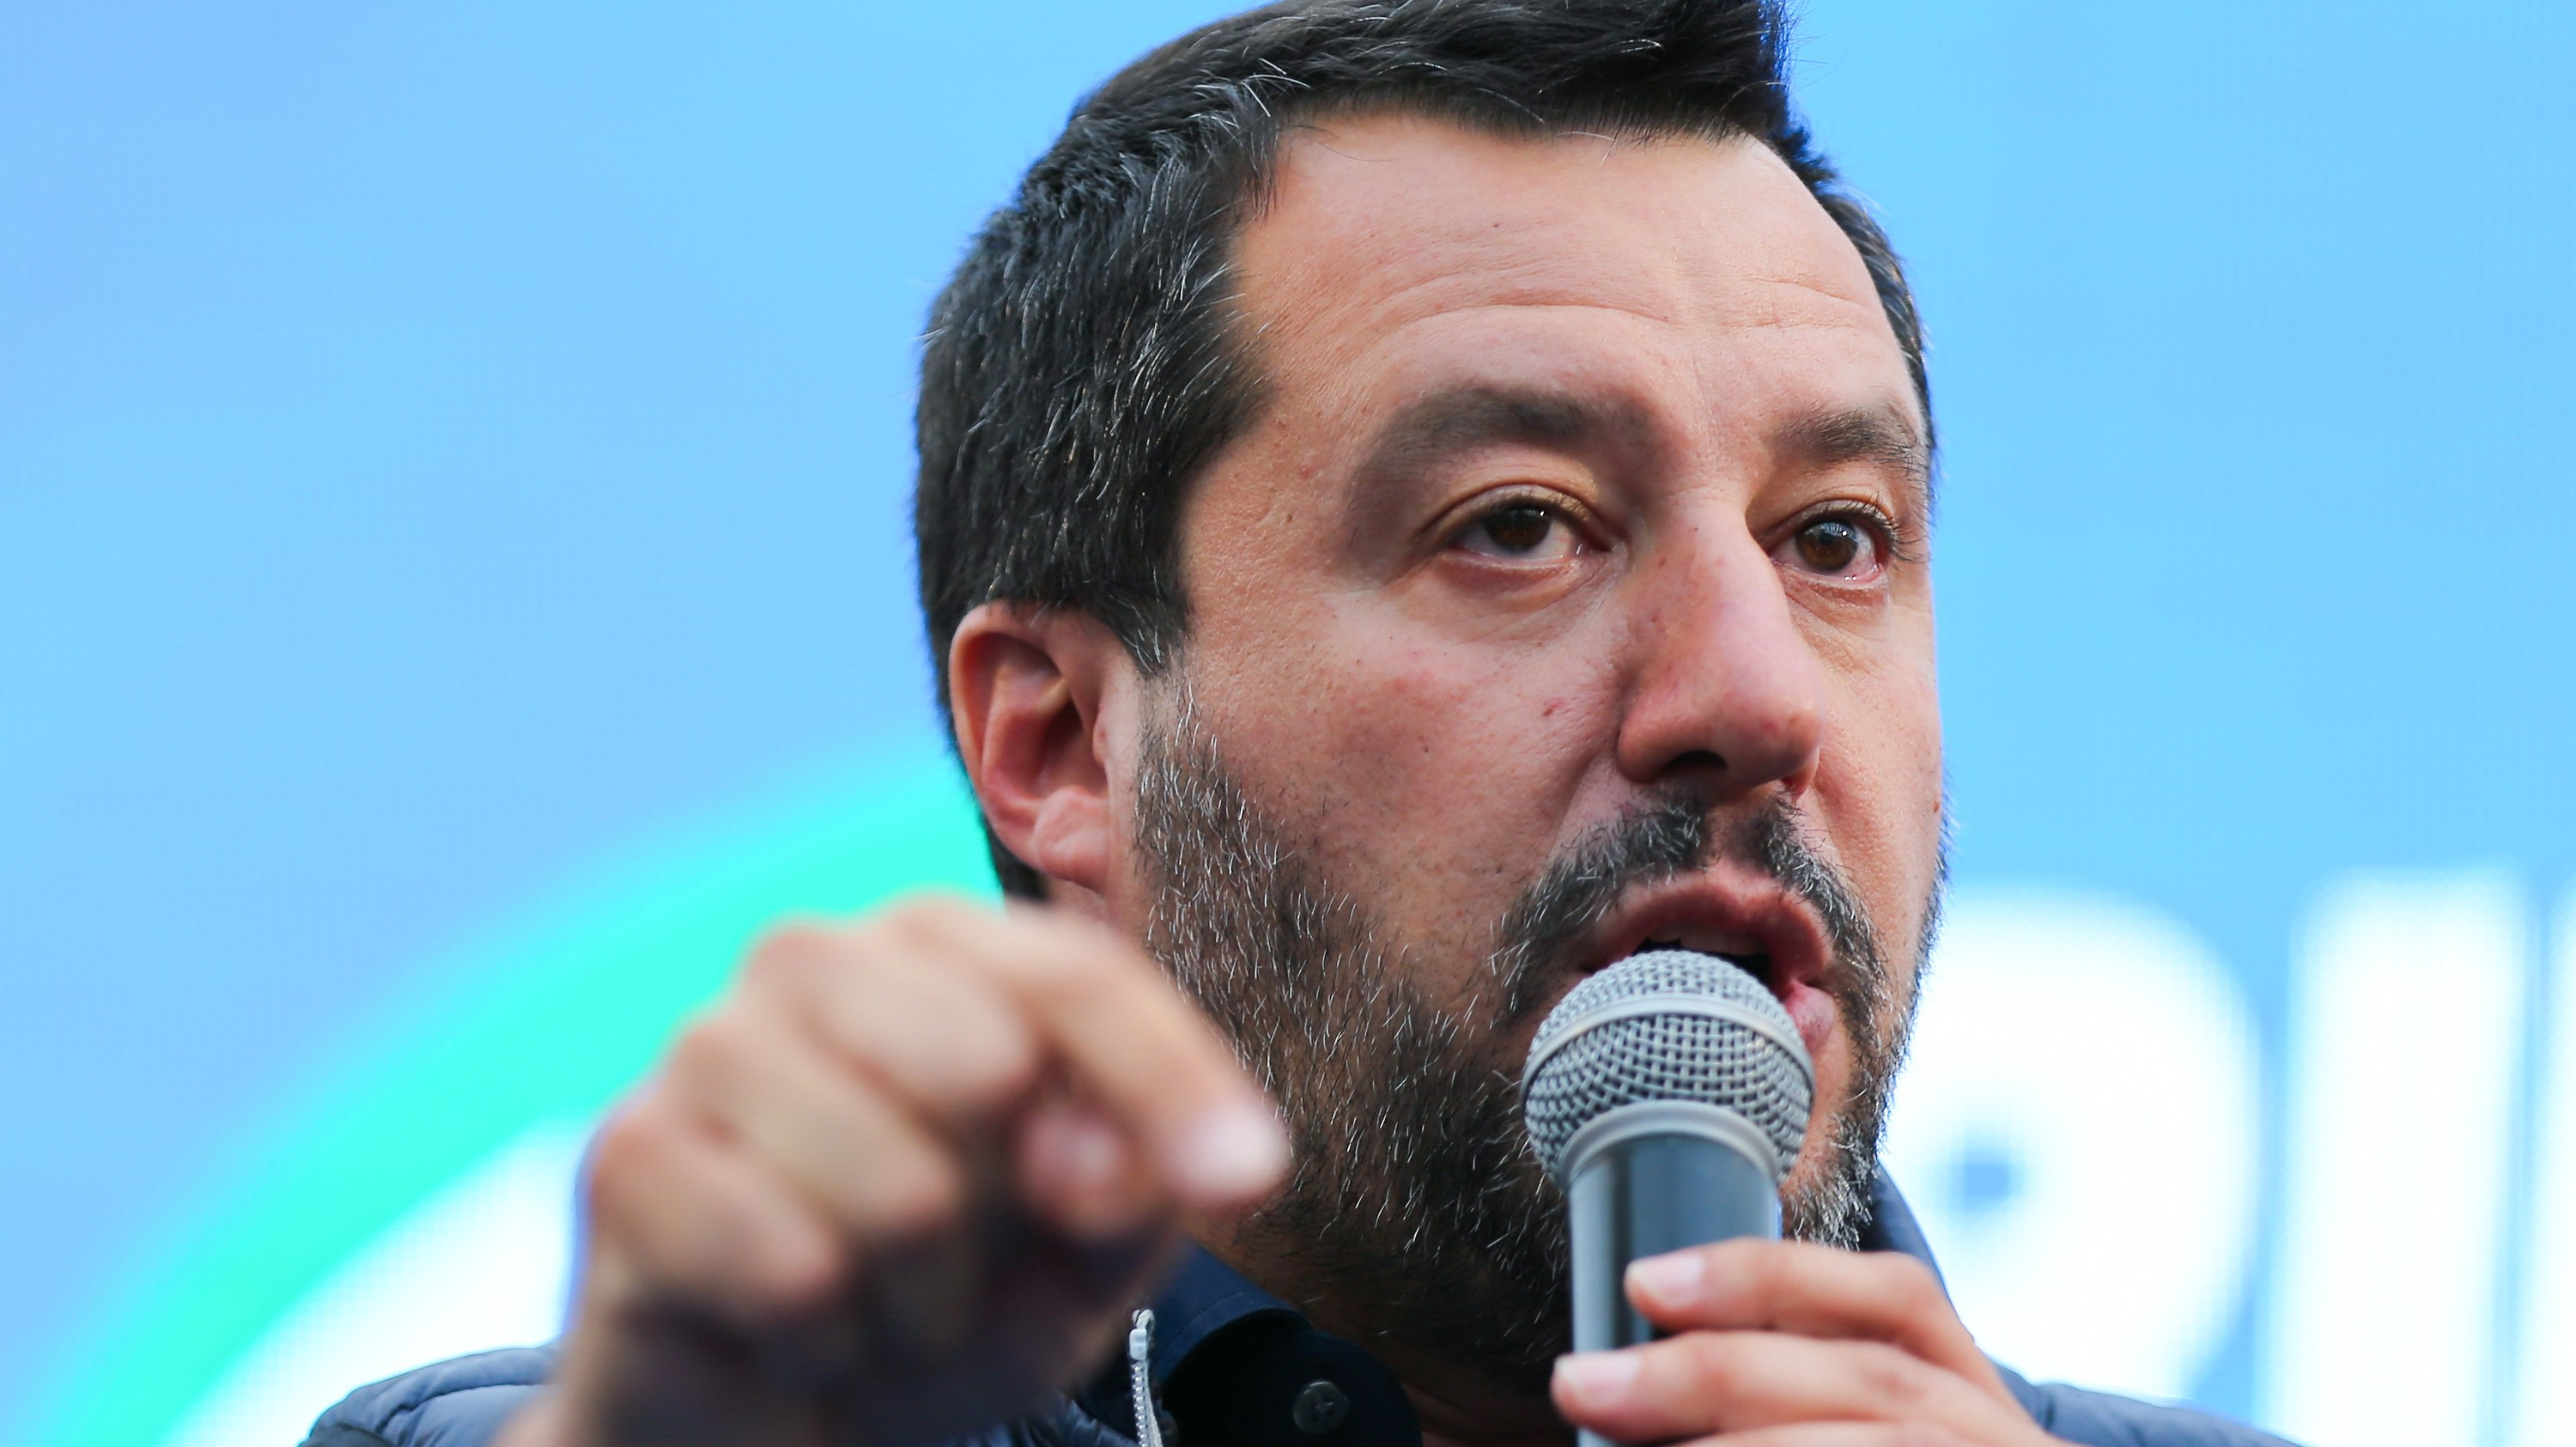 Italy's Far-Right Interior Minister Wants to Send a Boat Full of Migrants Back to a War Zone